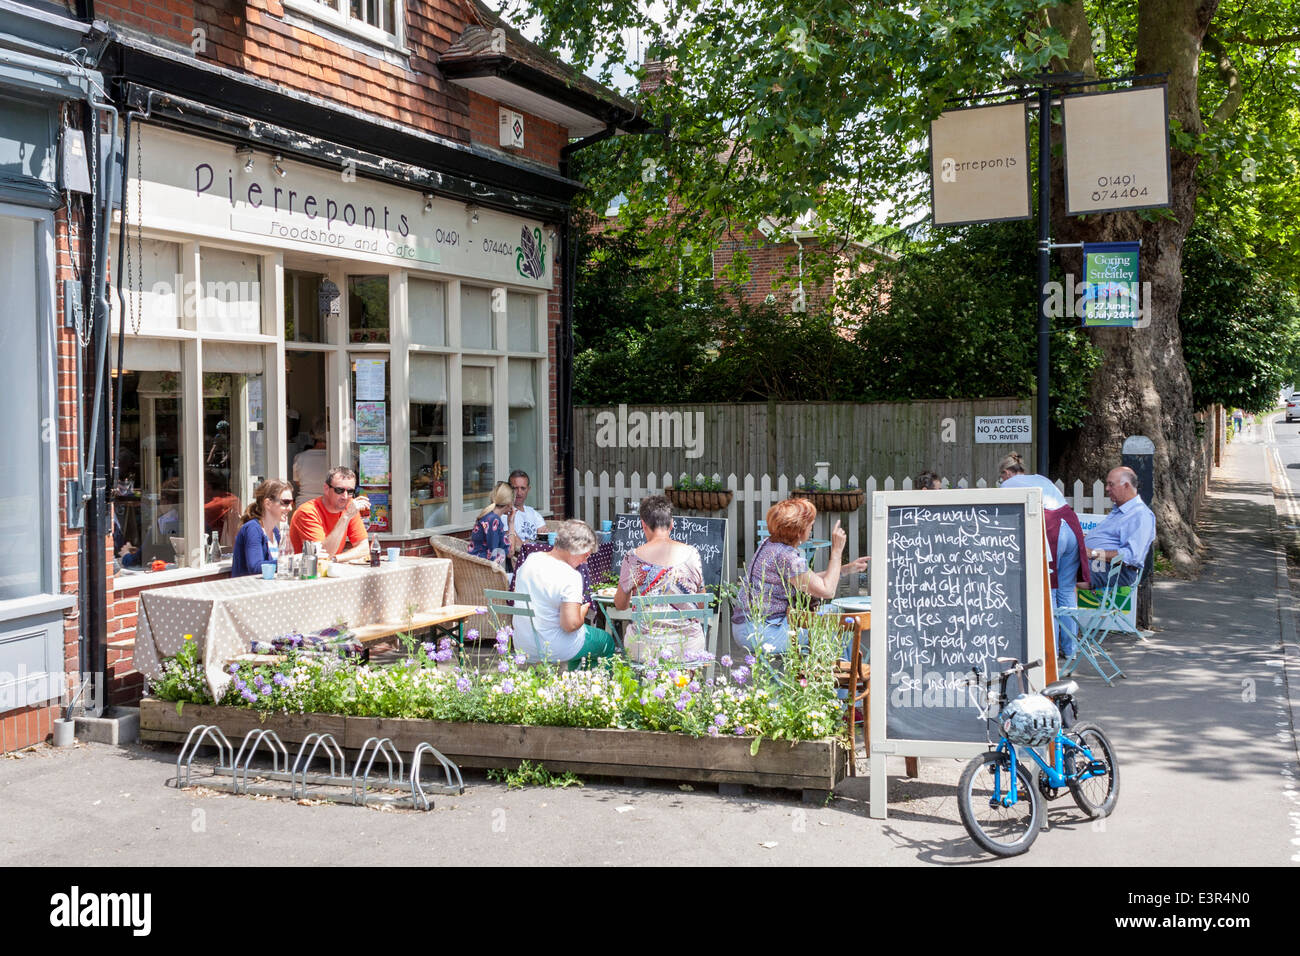 Customers eating outside a café. Goring-on-Thames, Oxfordshire, England, GB, UK. Stock Photo